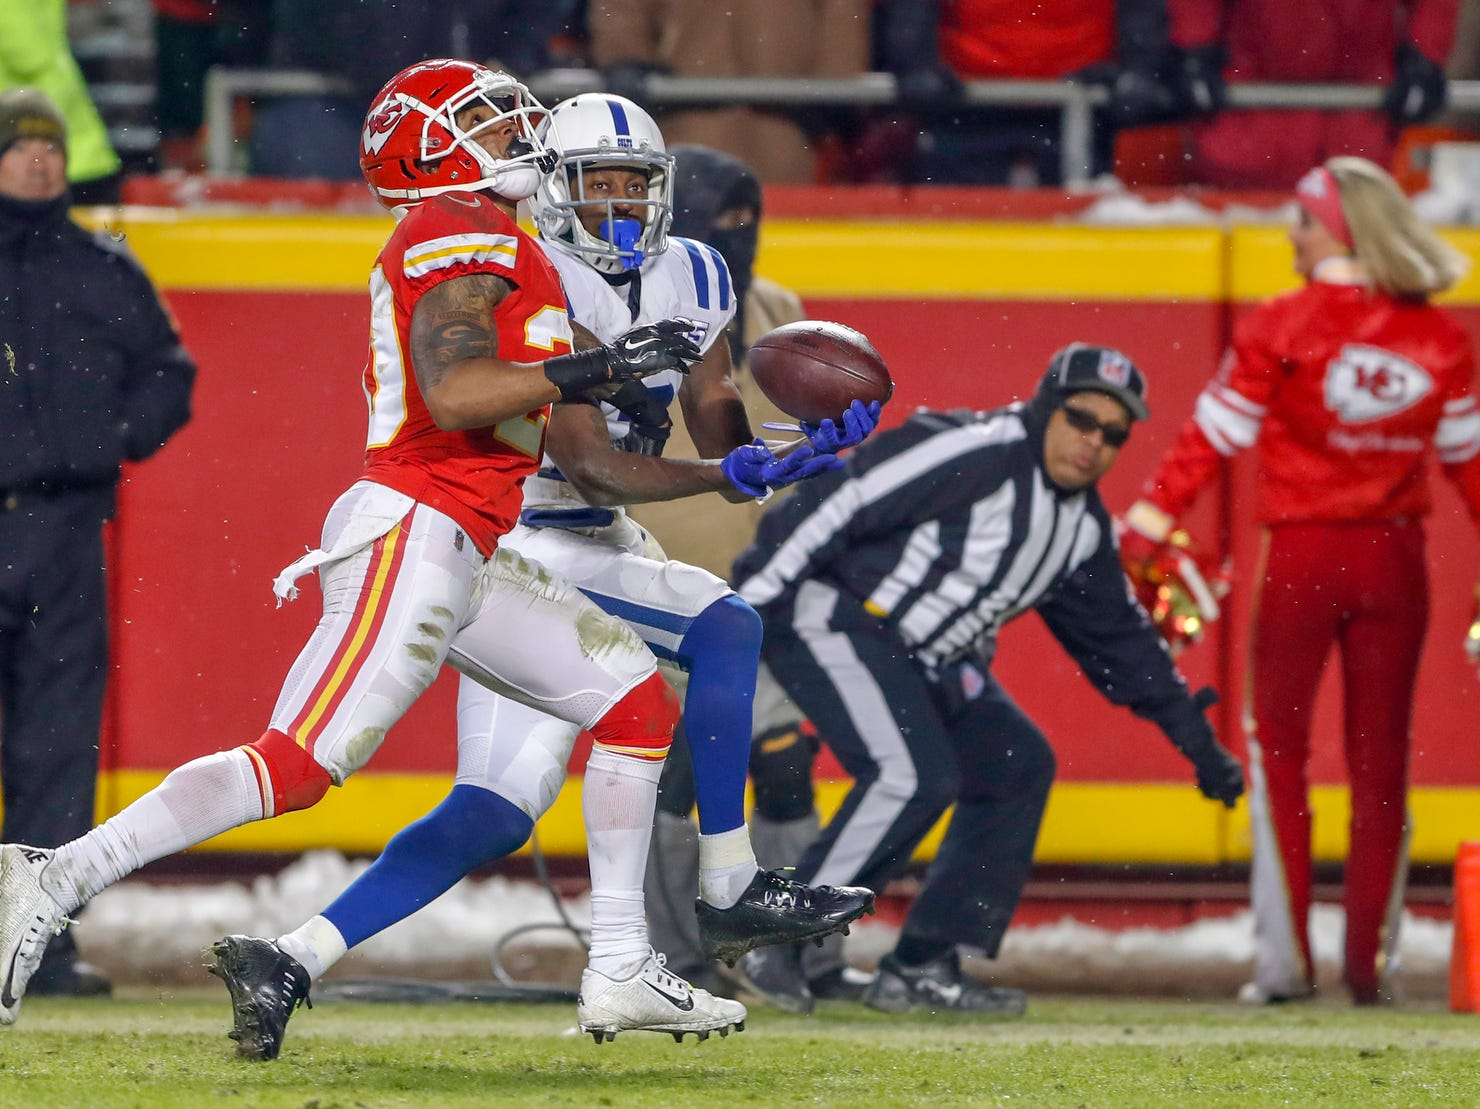 Indianapolis Colts wide receiver T.Y. Hilton (13) pulls in a touchdown pass against the Kansas City Chiefs in the fourth quarter at Arrowhead Stadium in Kansas City, Mo., on Saturday, Jan. 12, 2019.